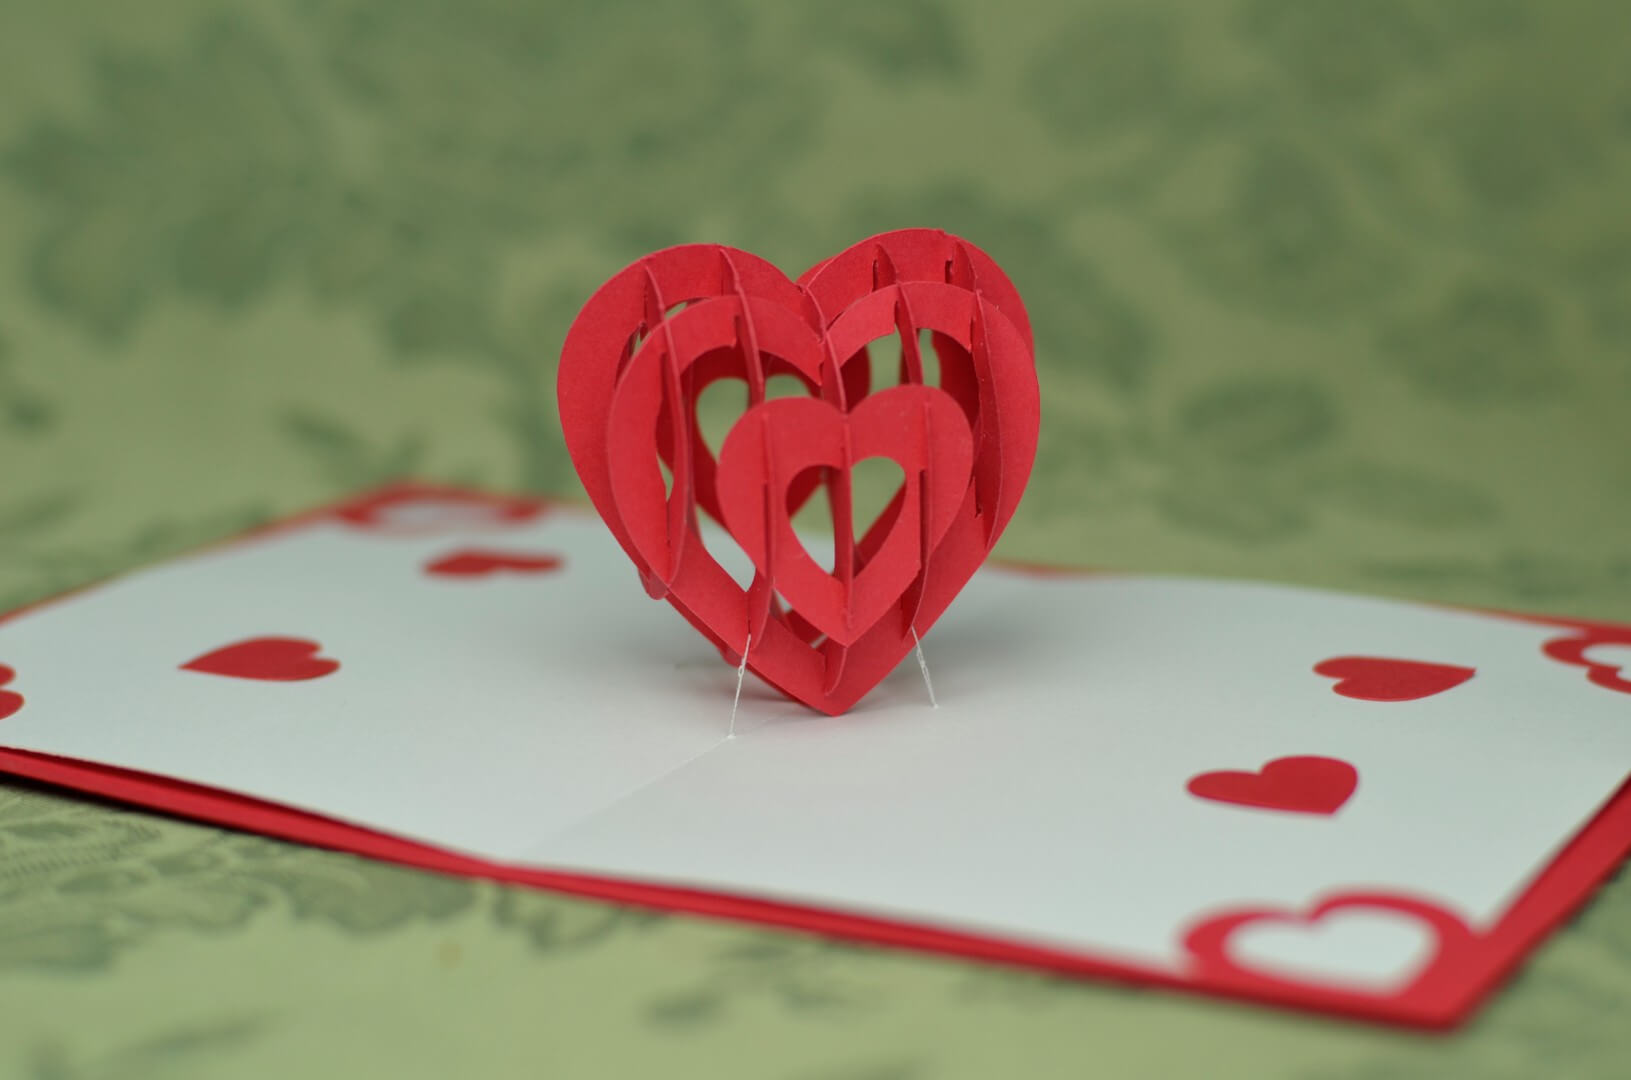 Twisting Hearts Pop Up Card Template - Creative Pop Up Cards For Twisting Hearts Pop Up Card Template